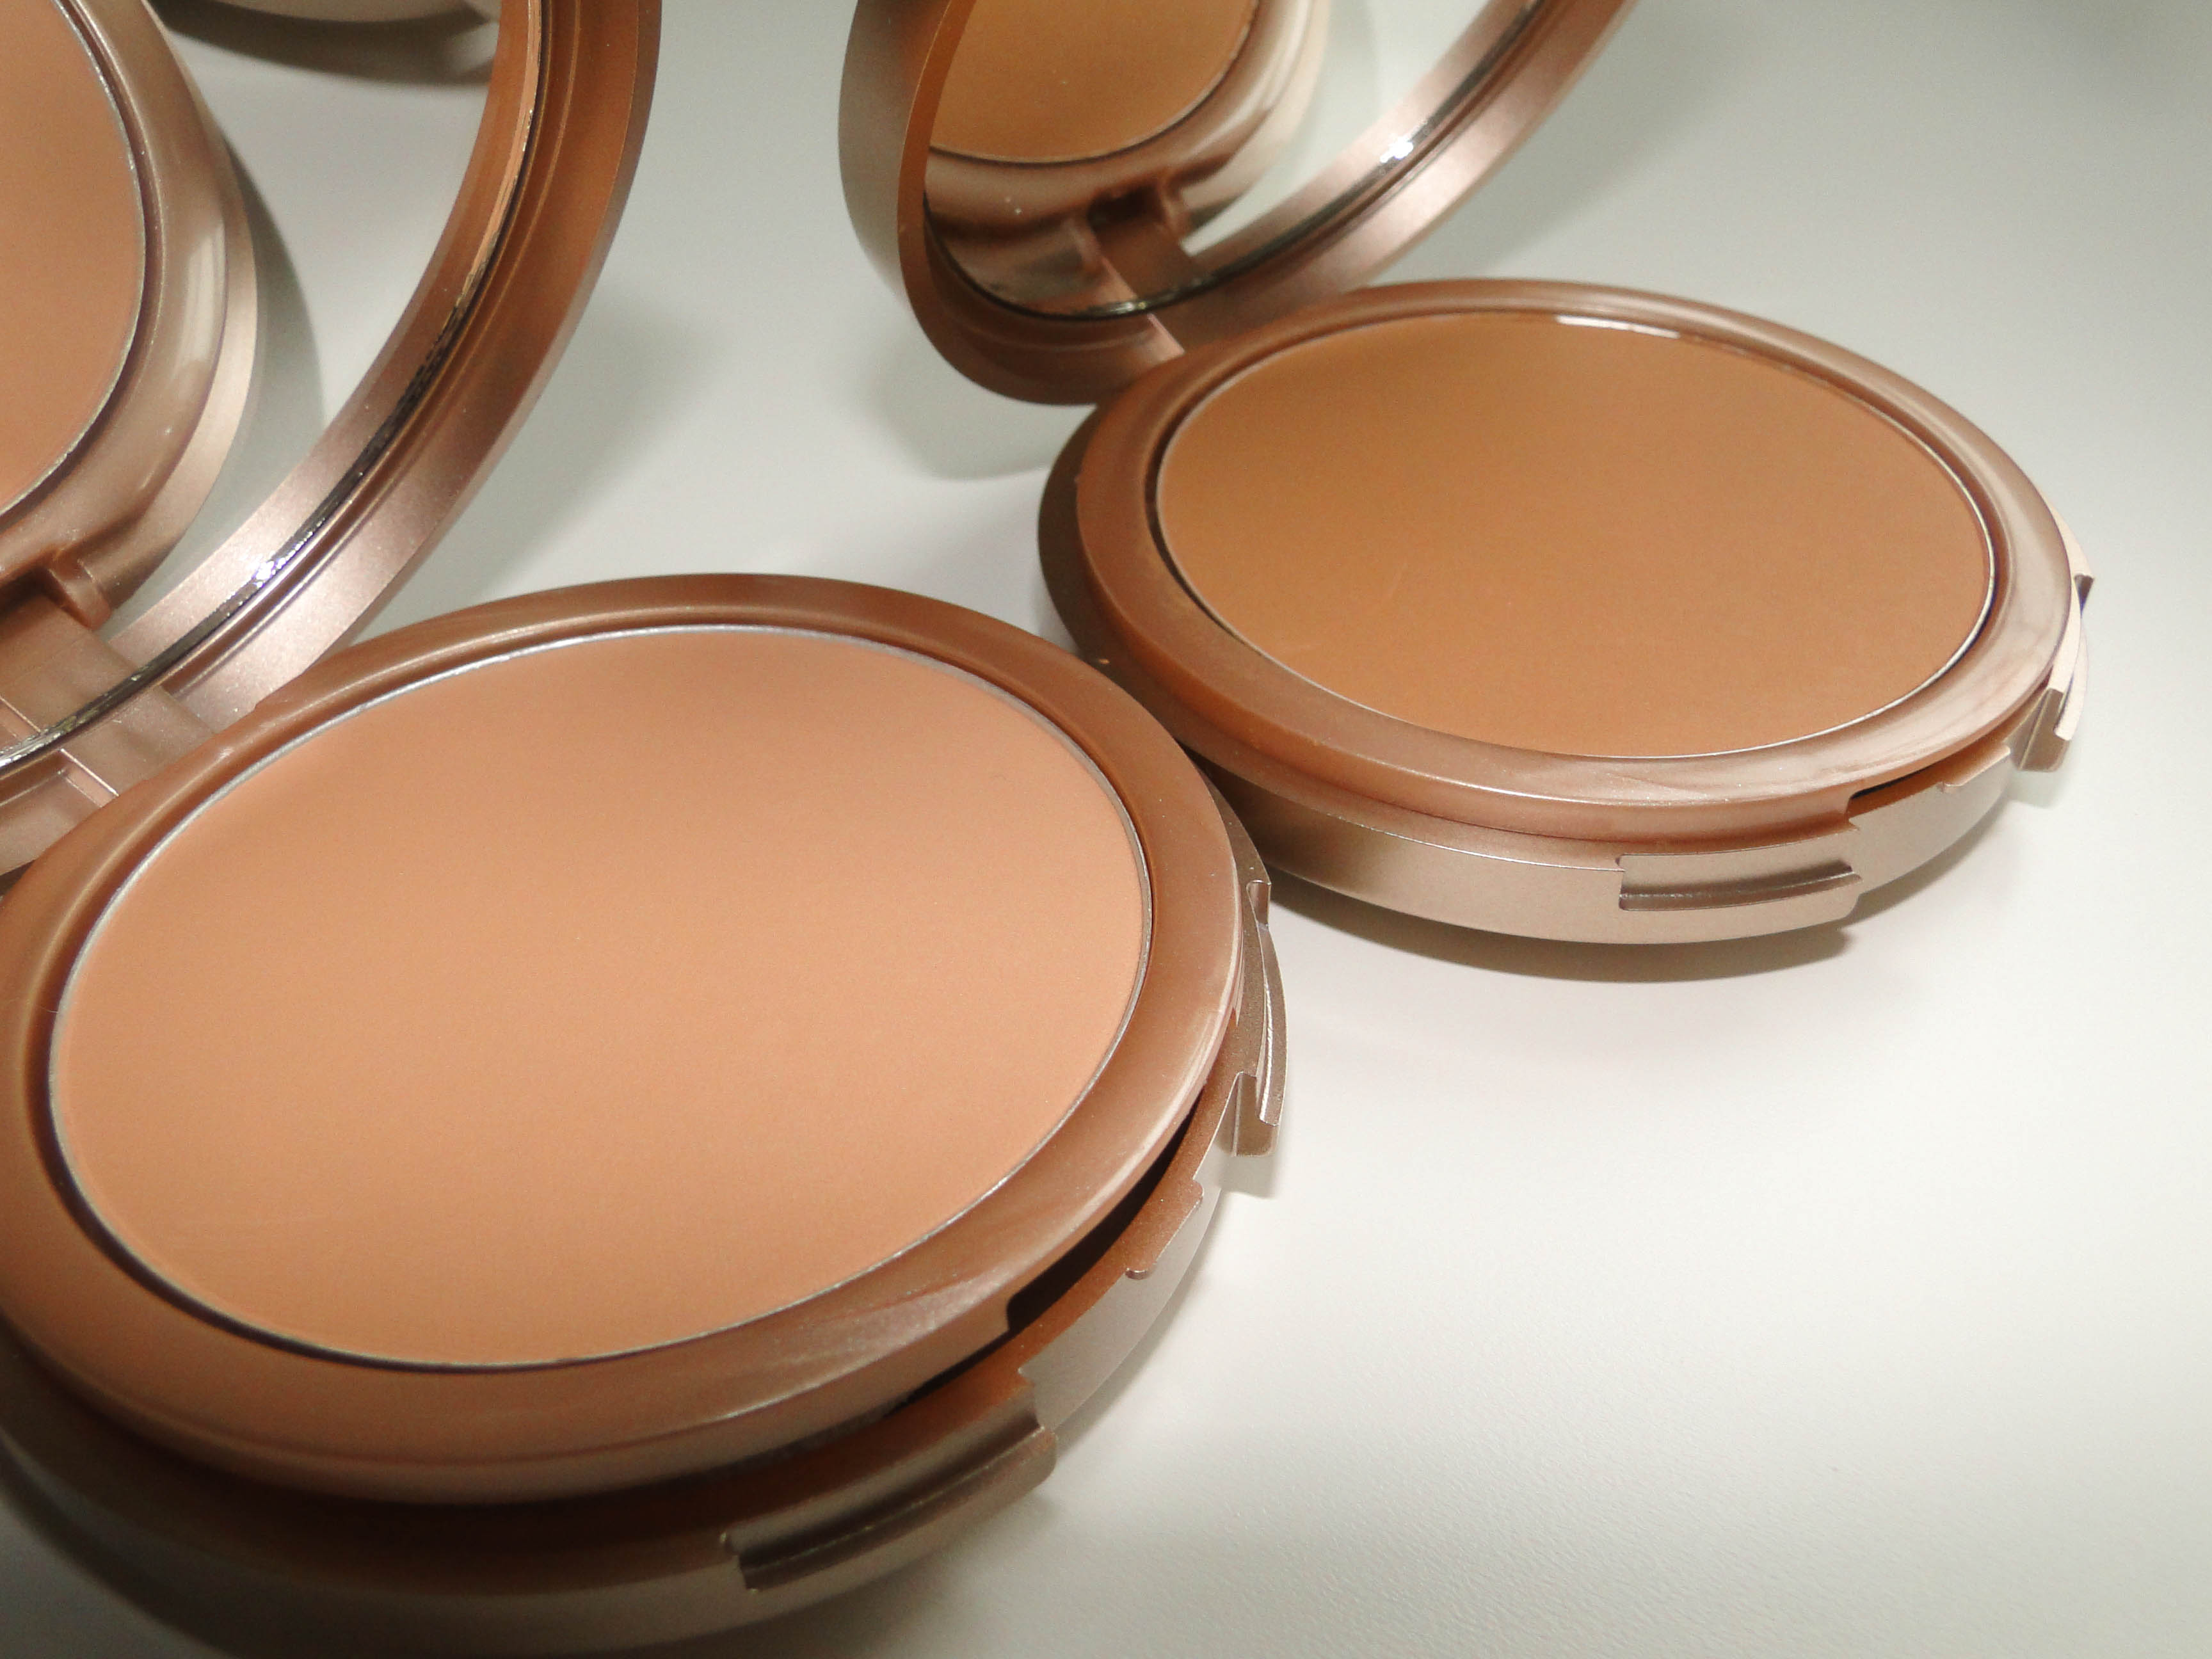 Kiko Life in Rio Sunproof Powder Foundation 4